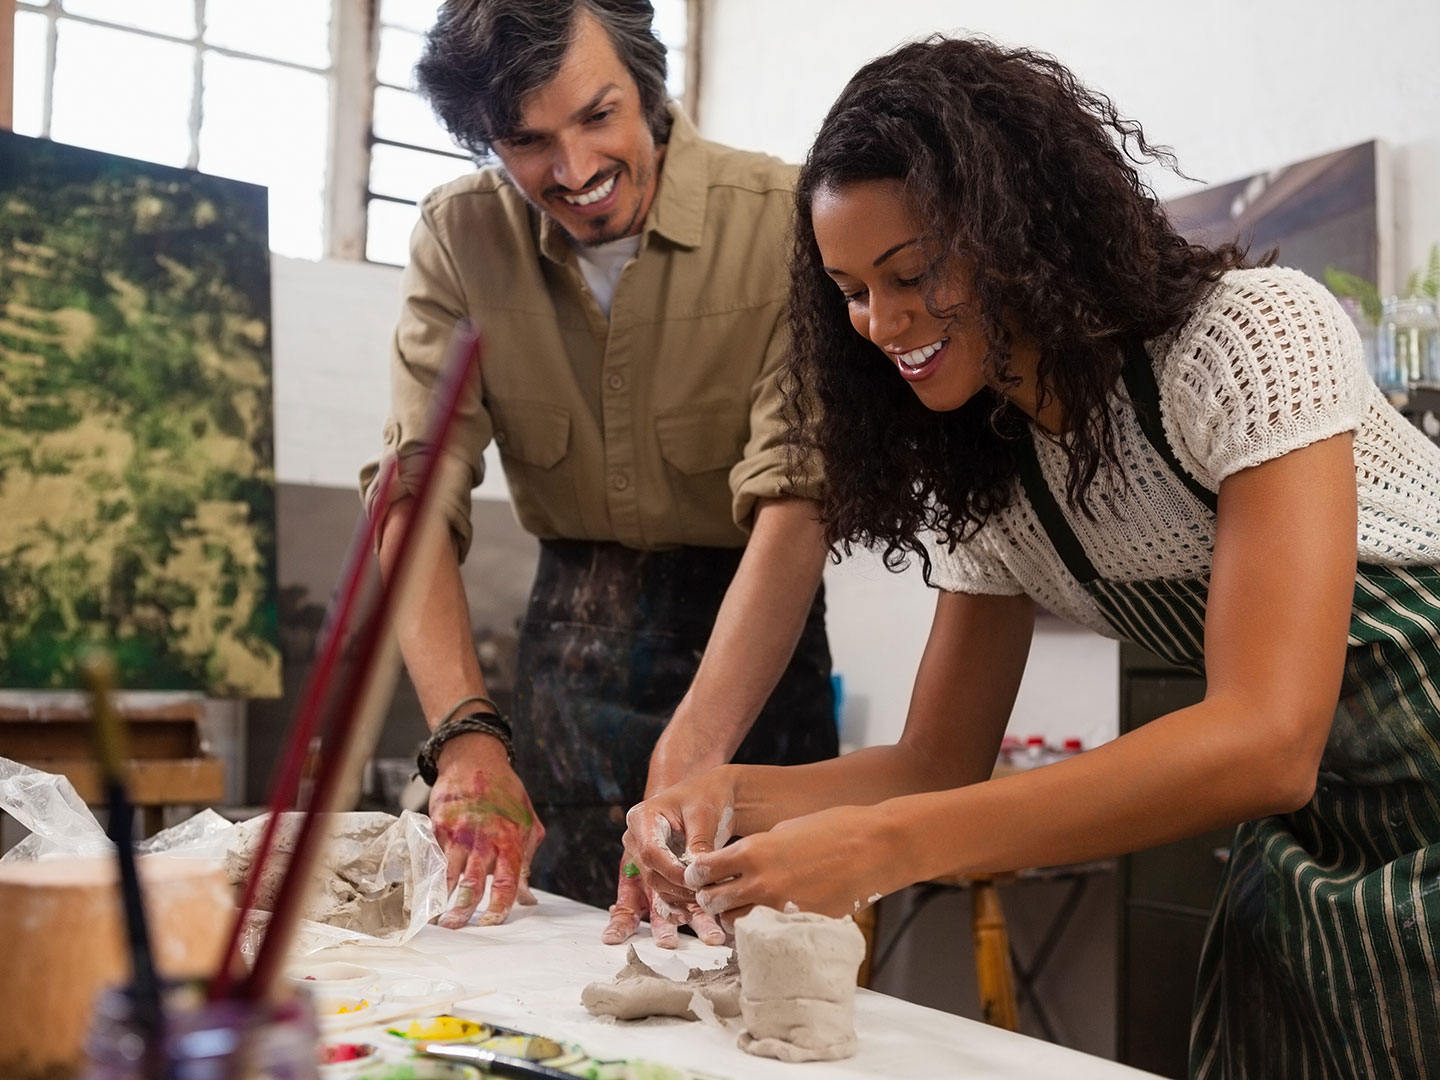 Pottery Class for Adults